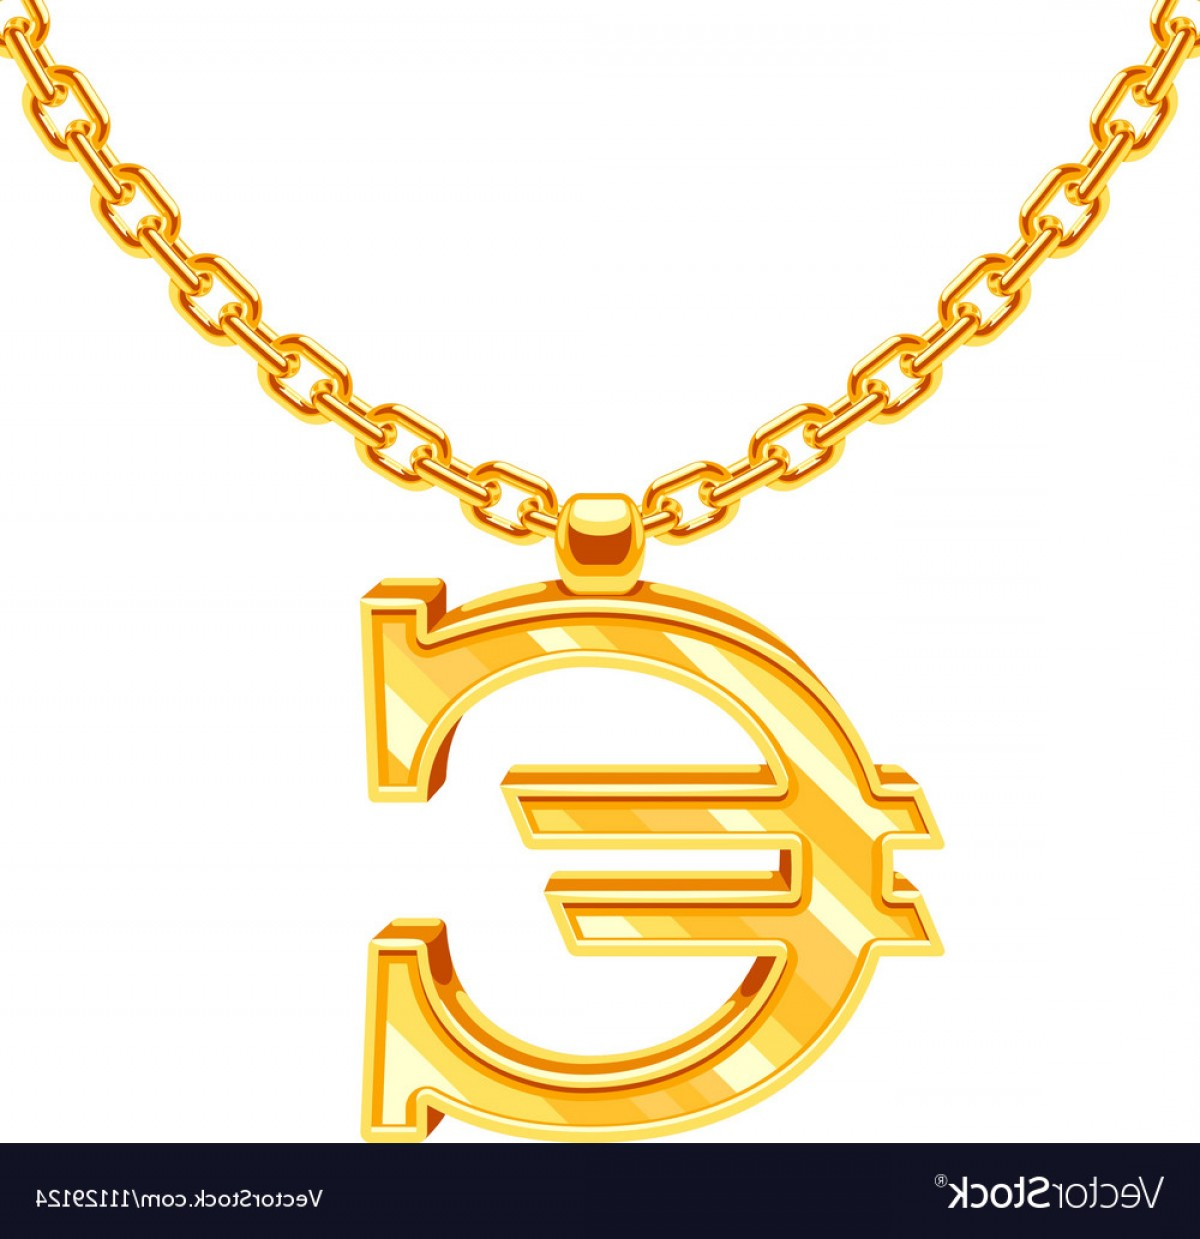 Necklace Vector Chain Grapicts: Gold Necklace Chain With Euro Symbol Vector